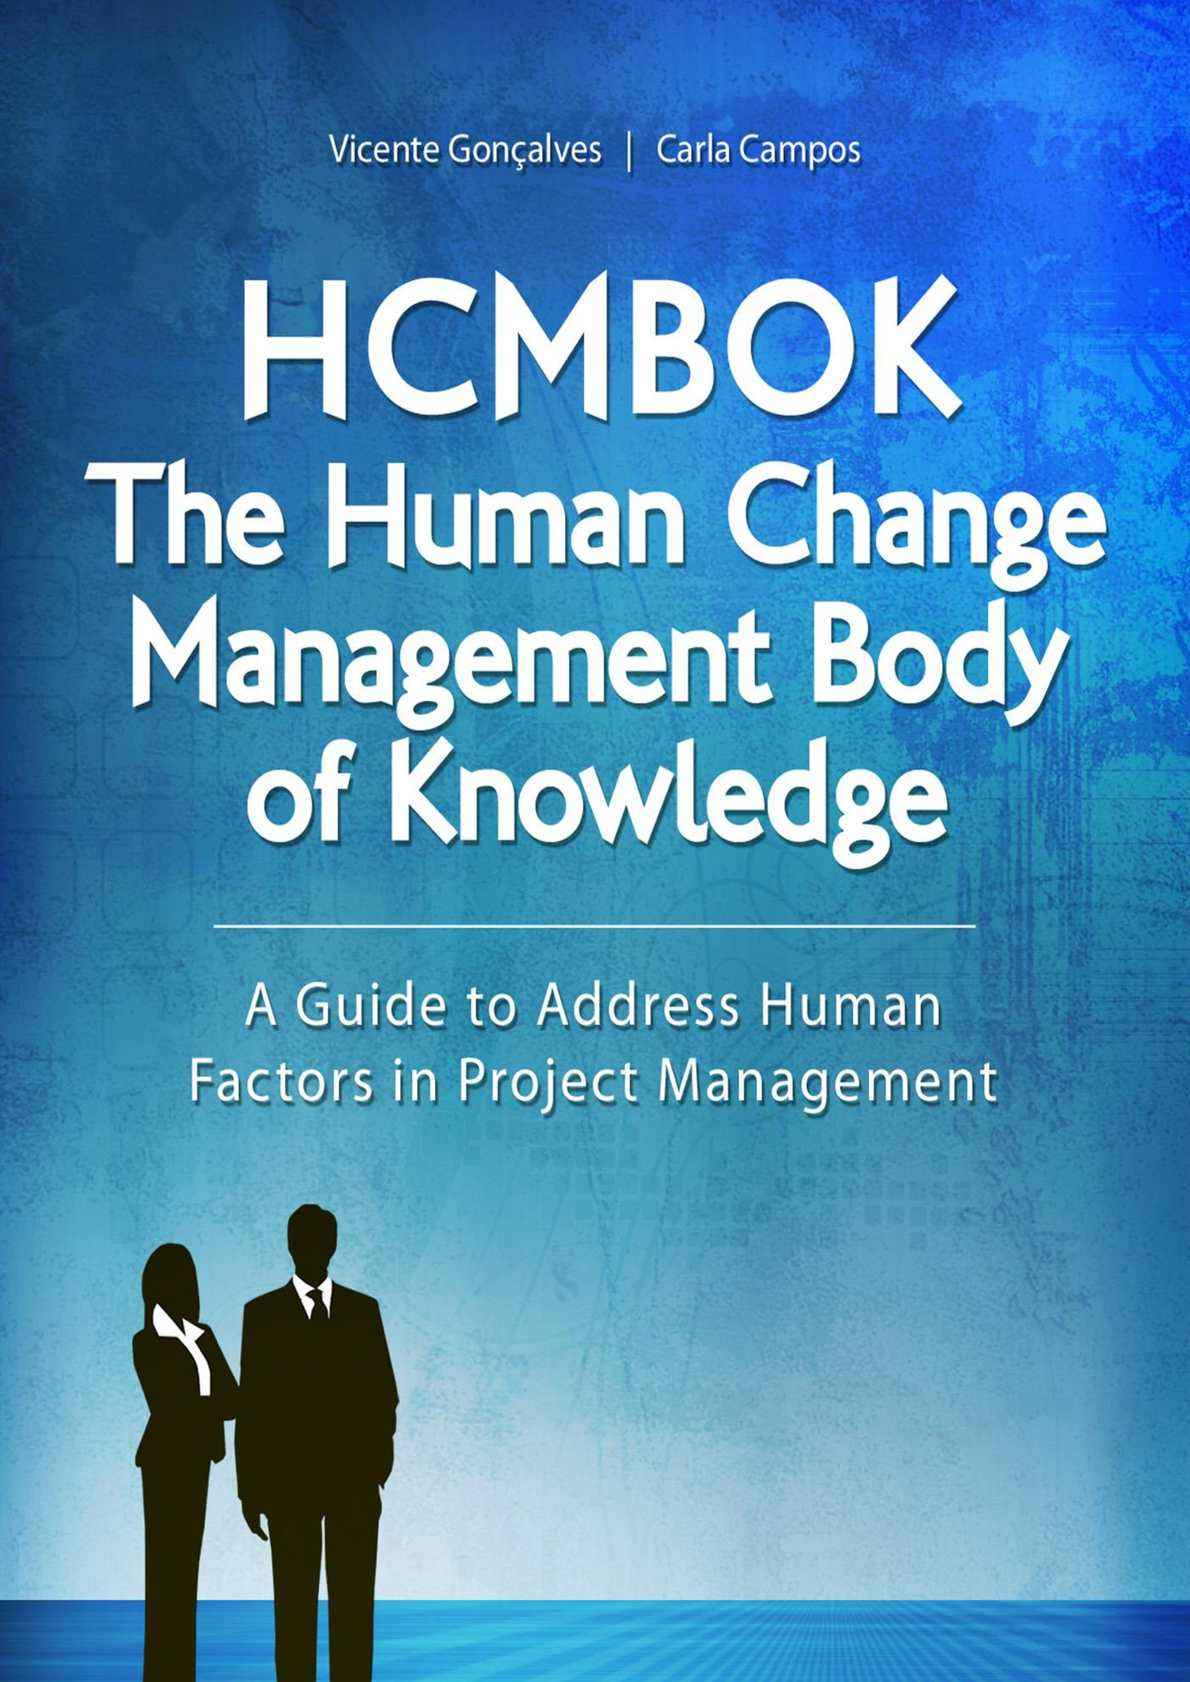 HCMBOK - The Human Change Management Body of Knowledge